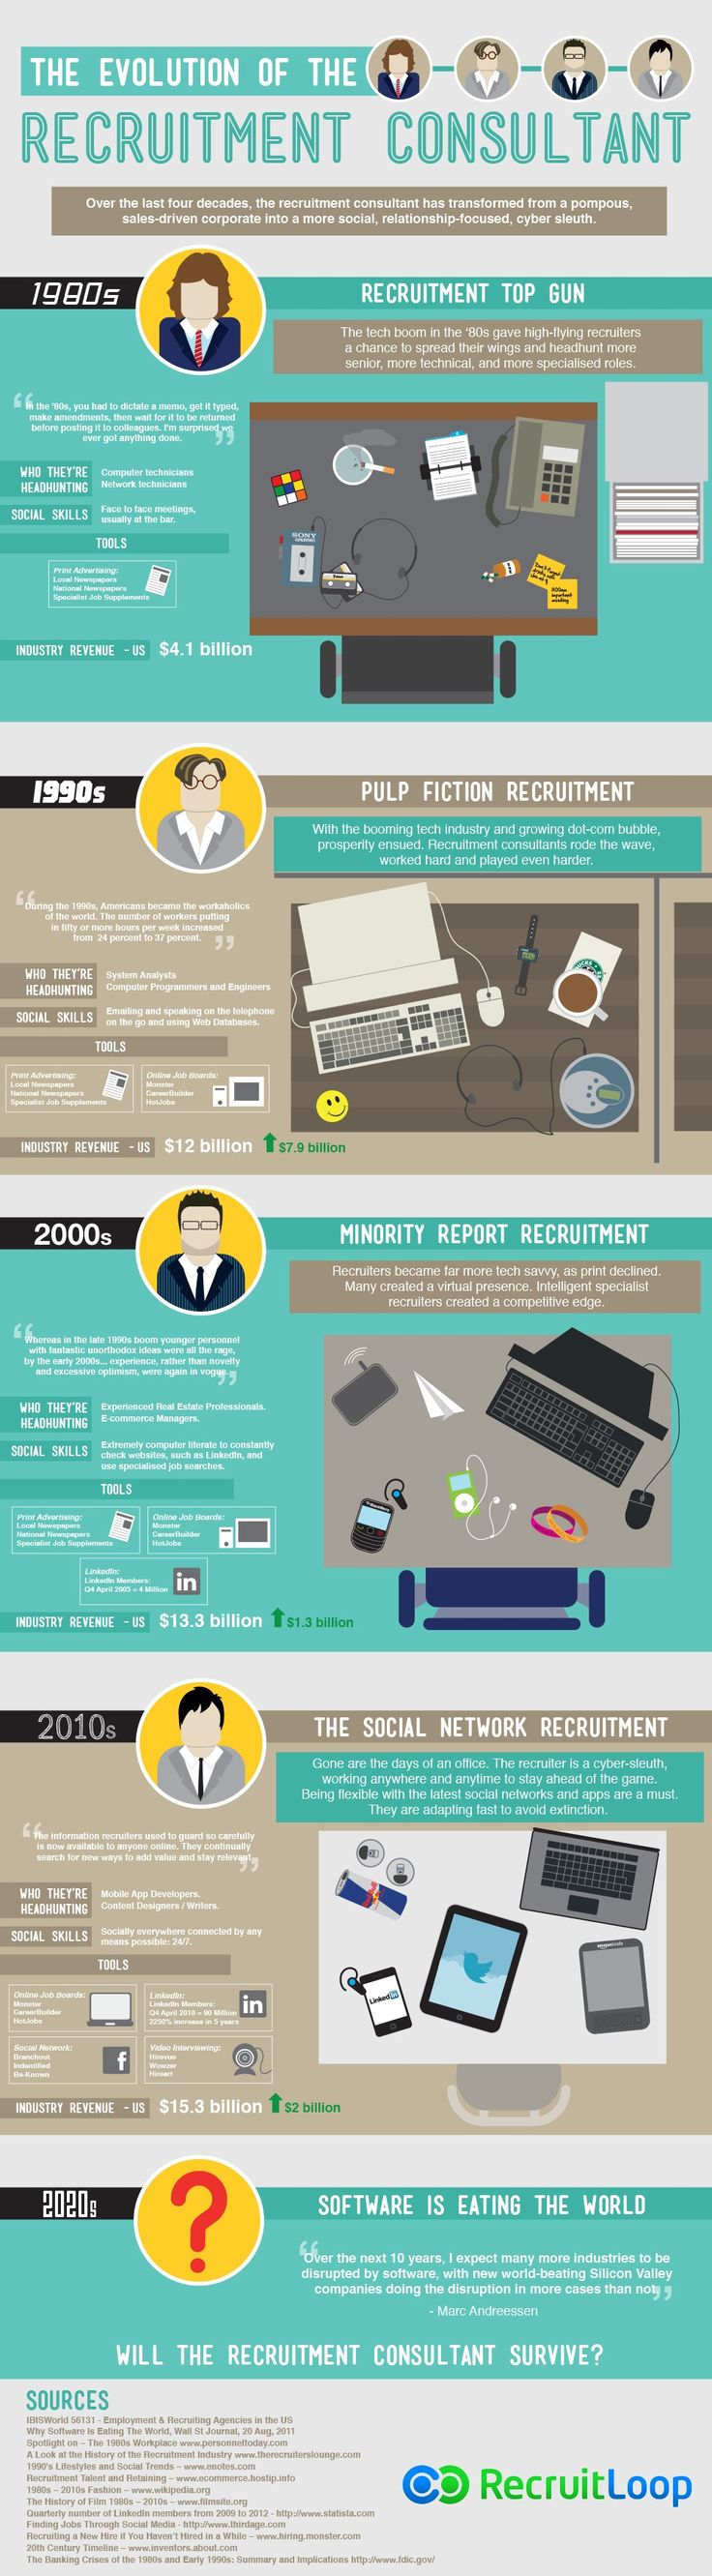 Will the #Recruitment Consultant Survive? #Infographic How recruitment has evolved over the years...